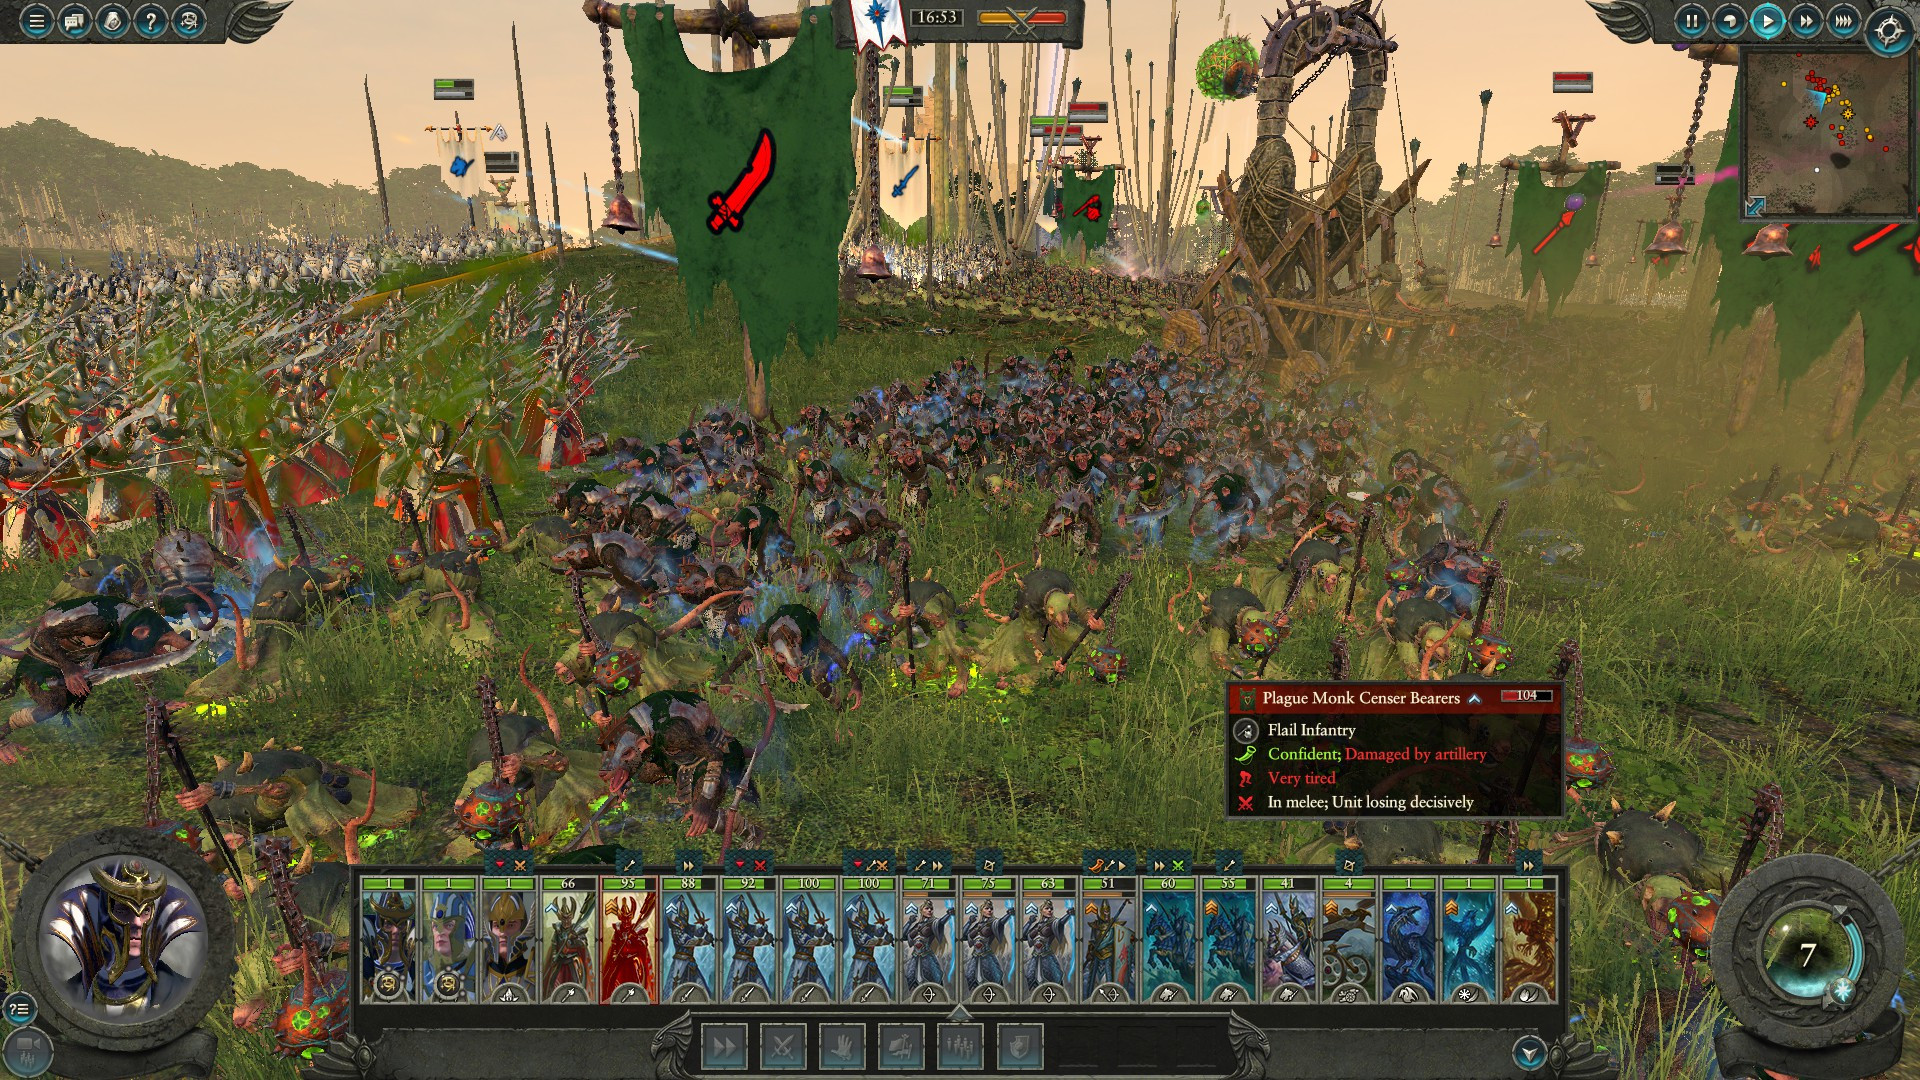 The chaos and action of Total War: Warhammer II makes for a gripping